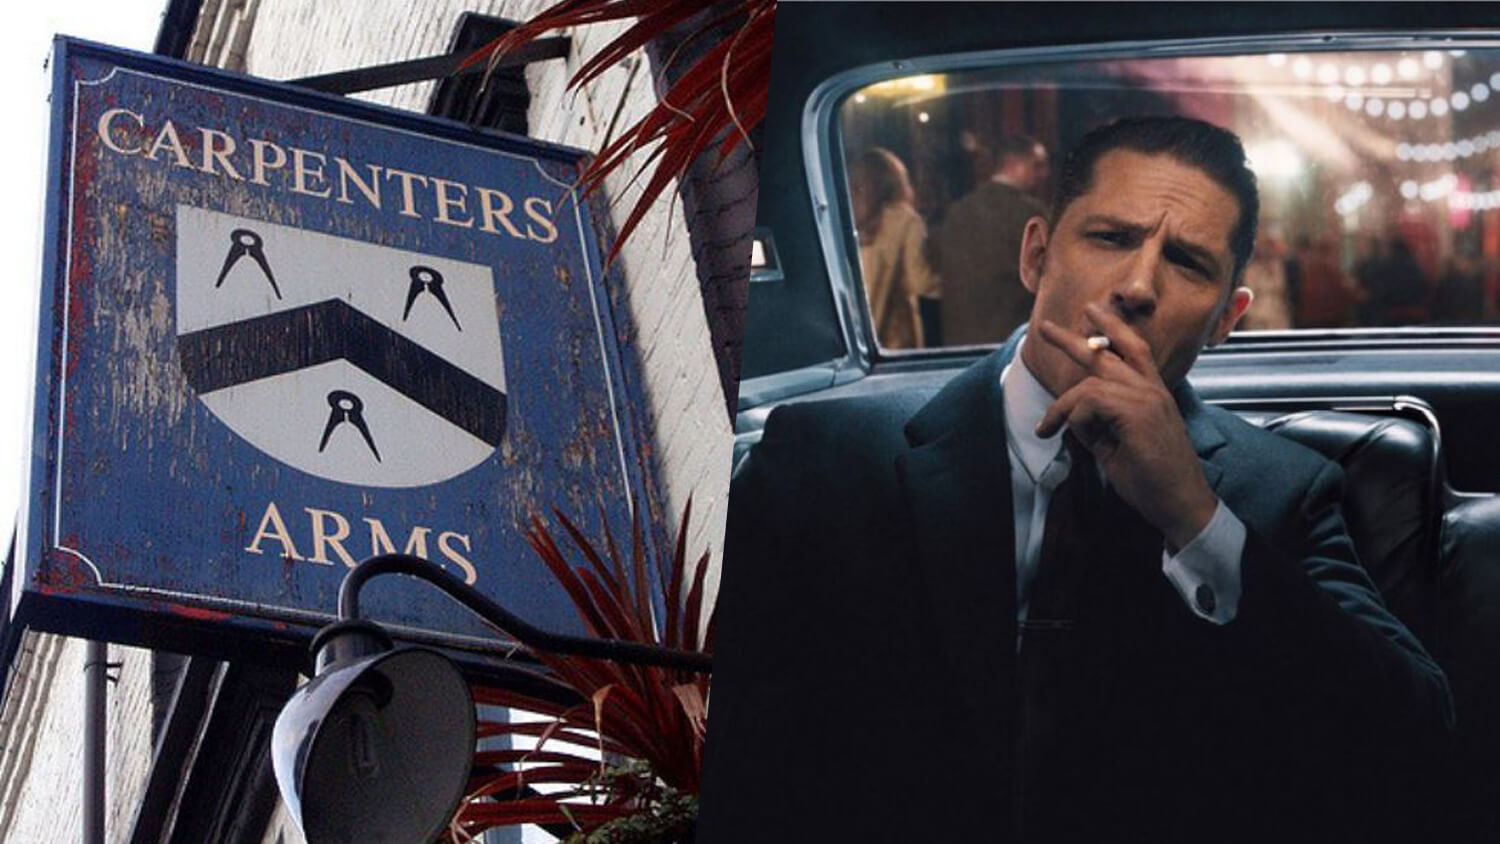 London's Former Kray Twins-Owned Mafia Hangout 'Carpenters Arms' Converts to Vegan-Friendly Pub